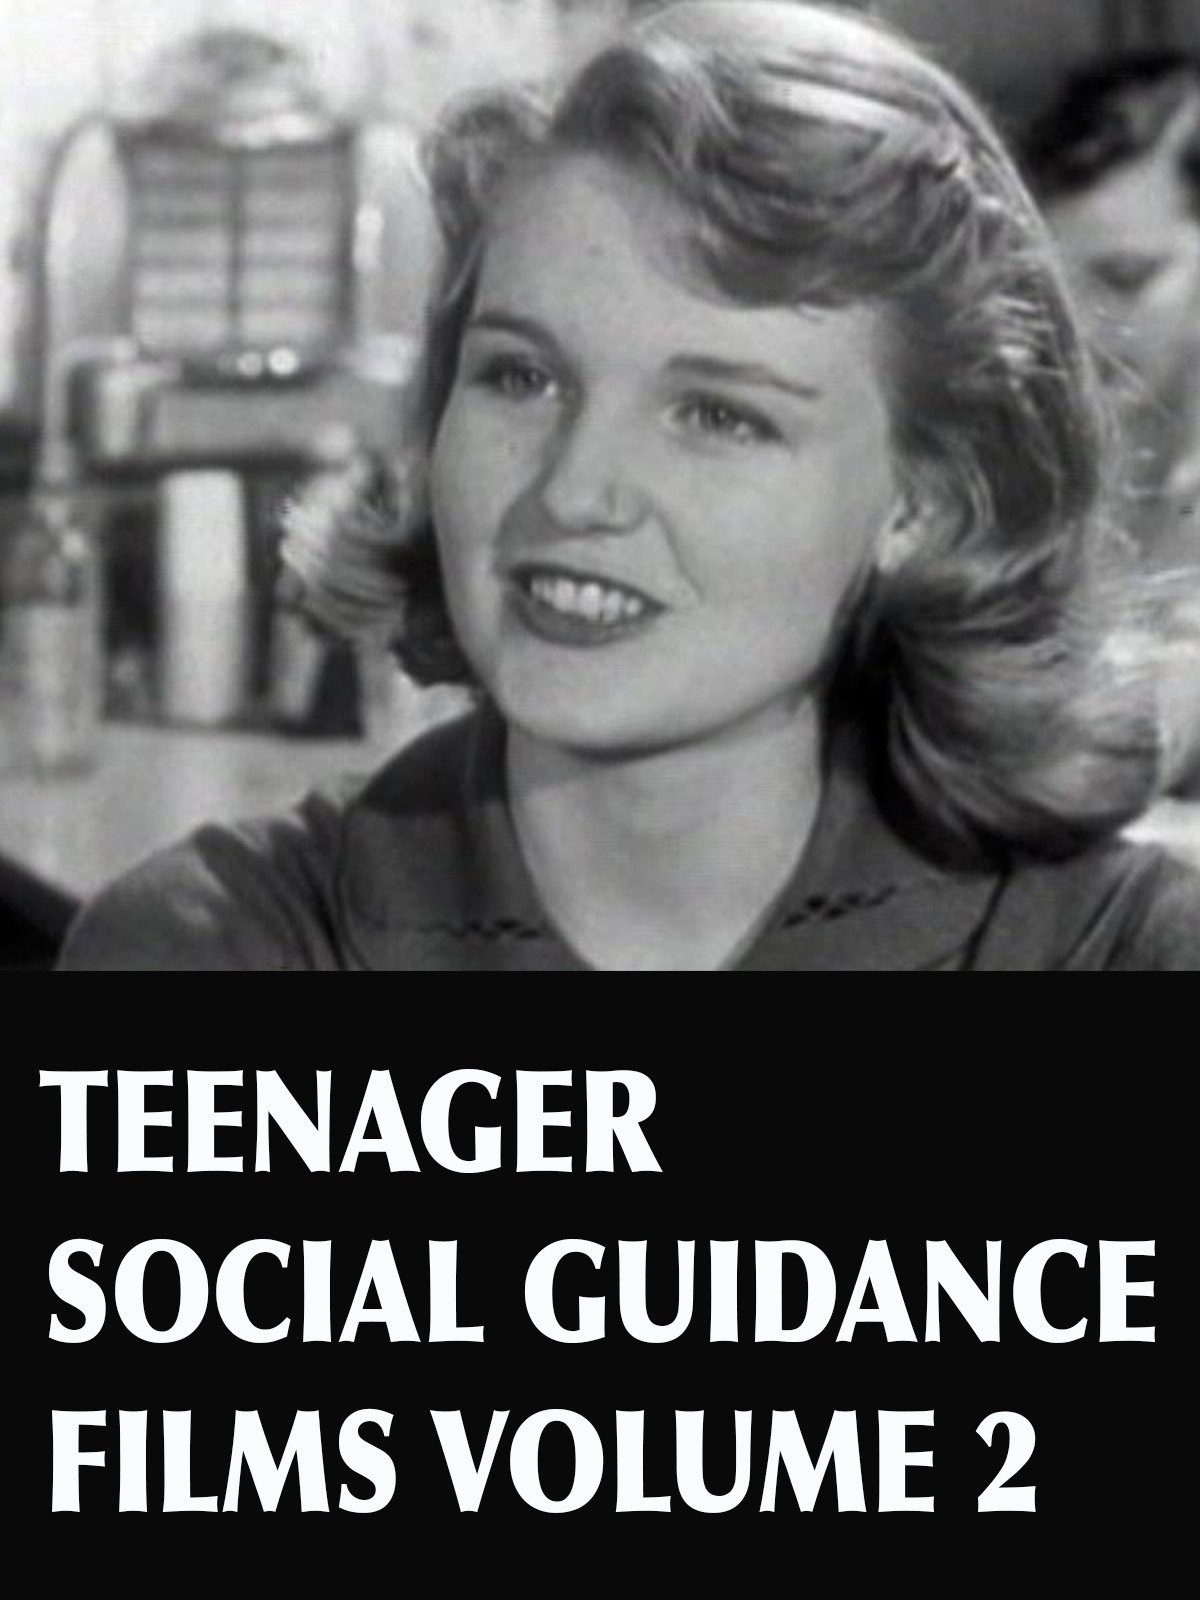 Teenager Social Guidance Films Vol. 2